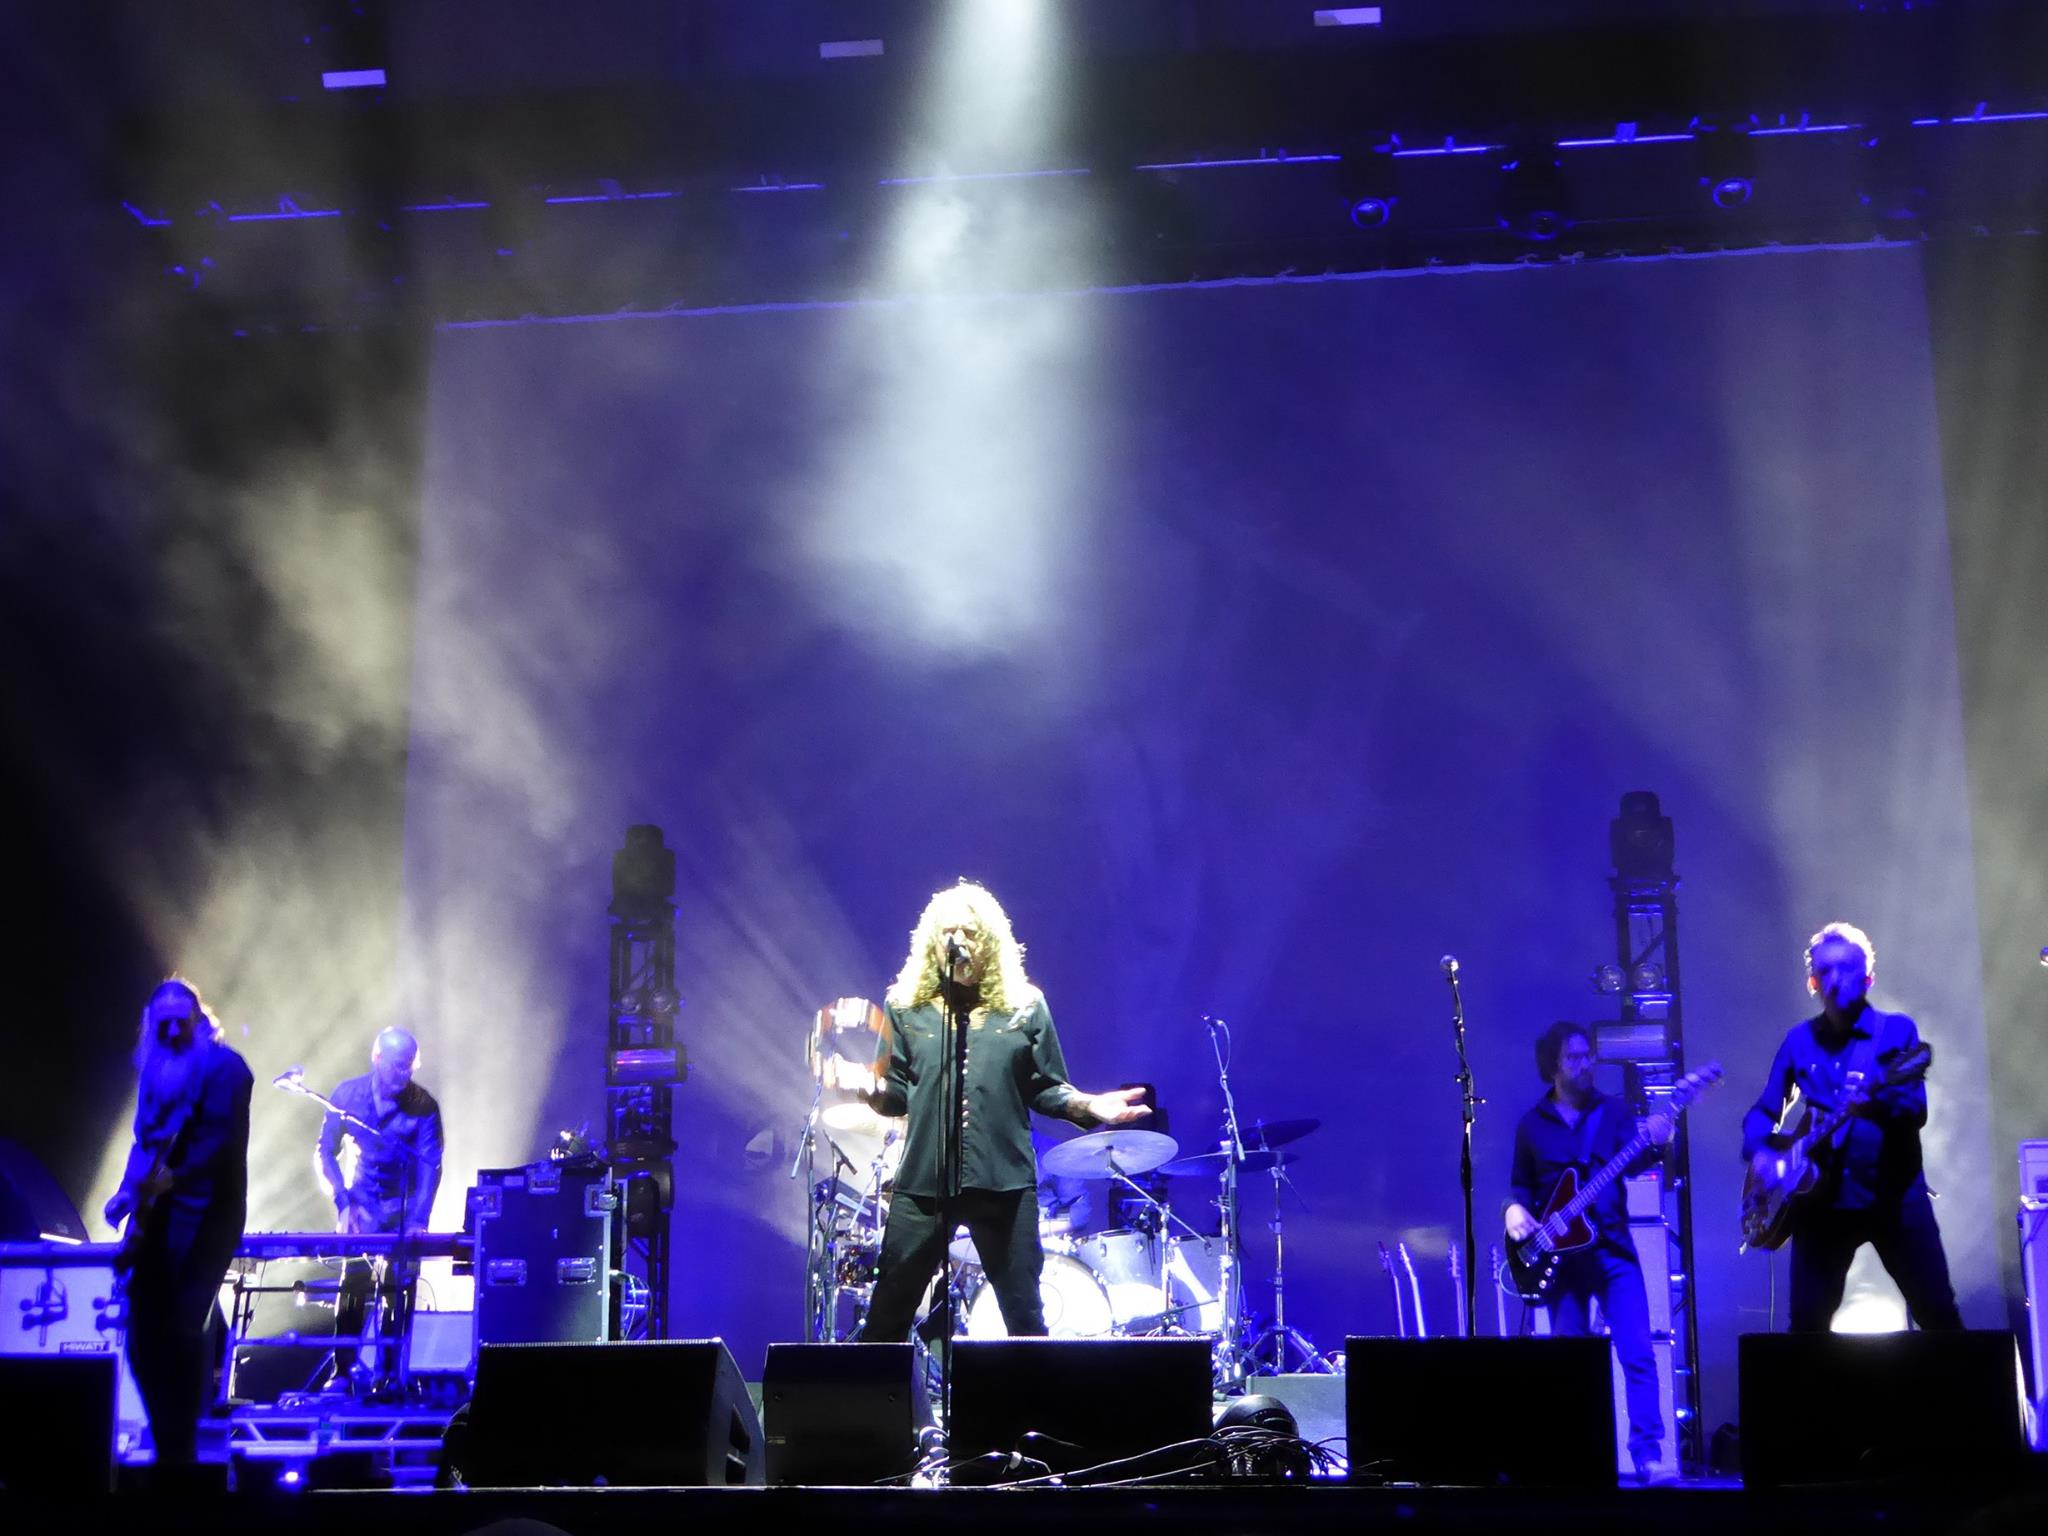 Setlist / Video | Robert Plant & Sensational Shape Shifters @ FirstMerit Bank Pavilion 9/23/15